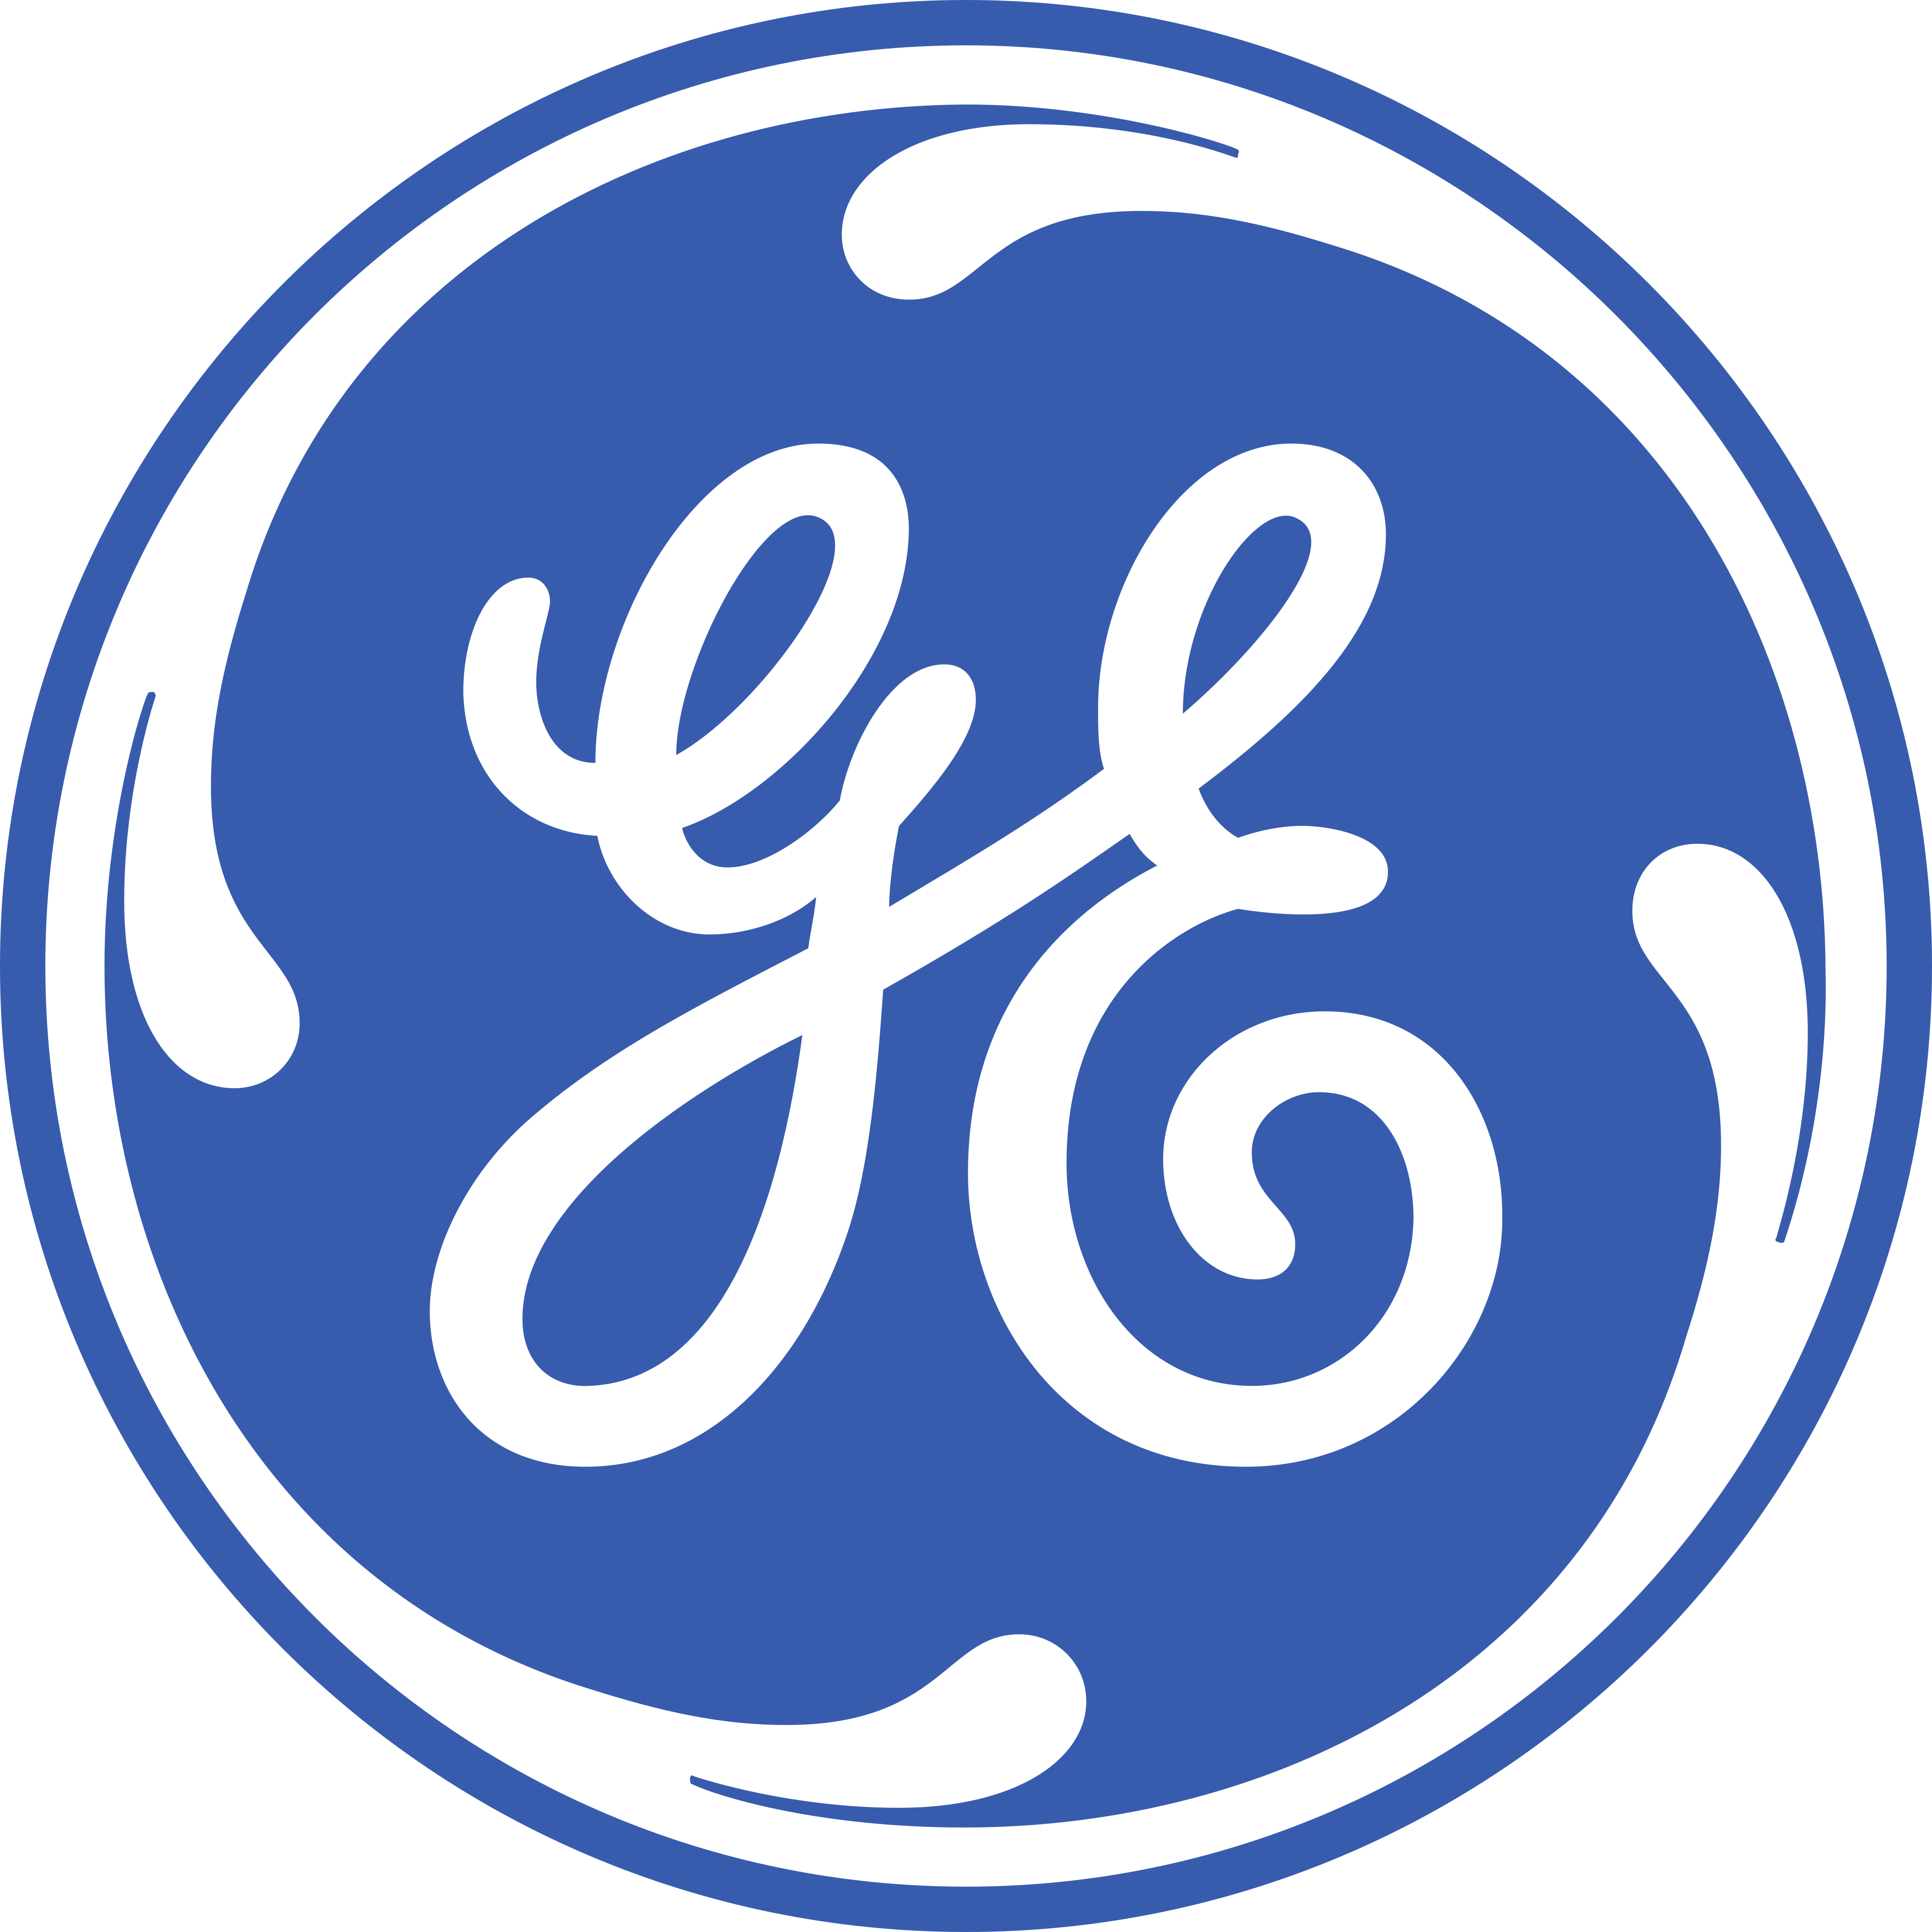 ge general electric logo - GE – General Electric Logo